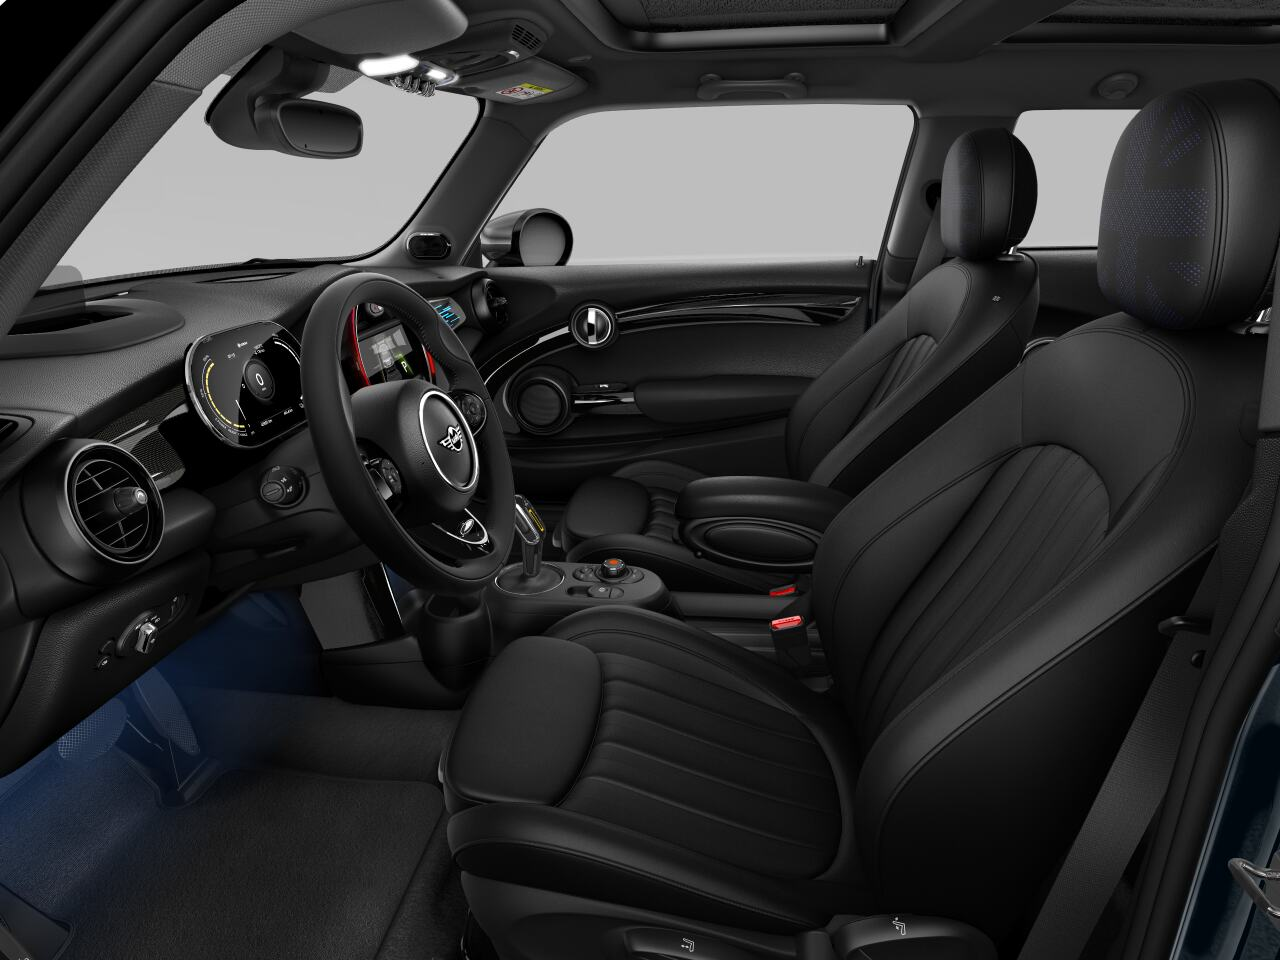 Mini electric – Package XL – interior view - driver's side